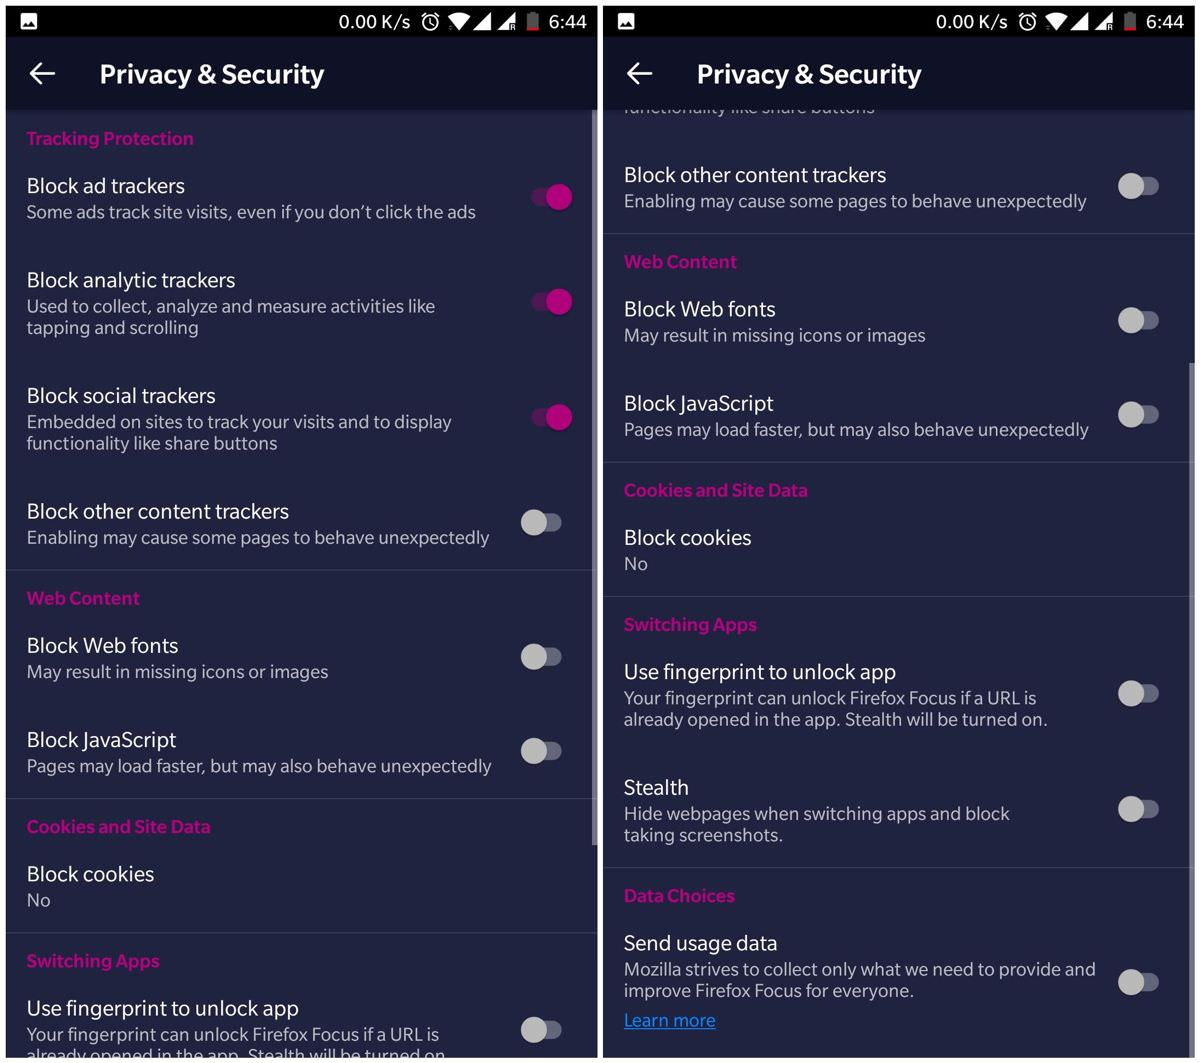 Privacy & security features of Firefox Focus